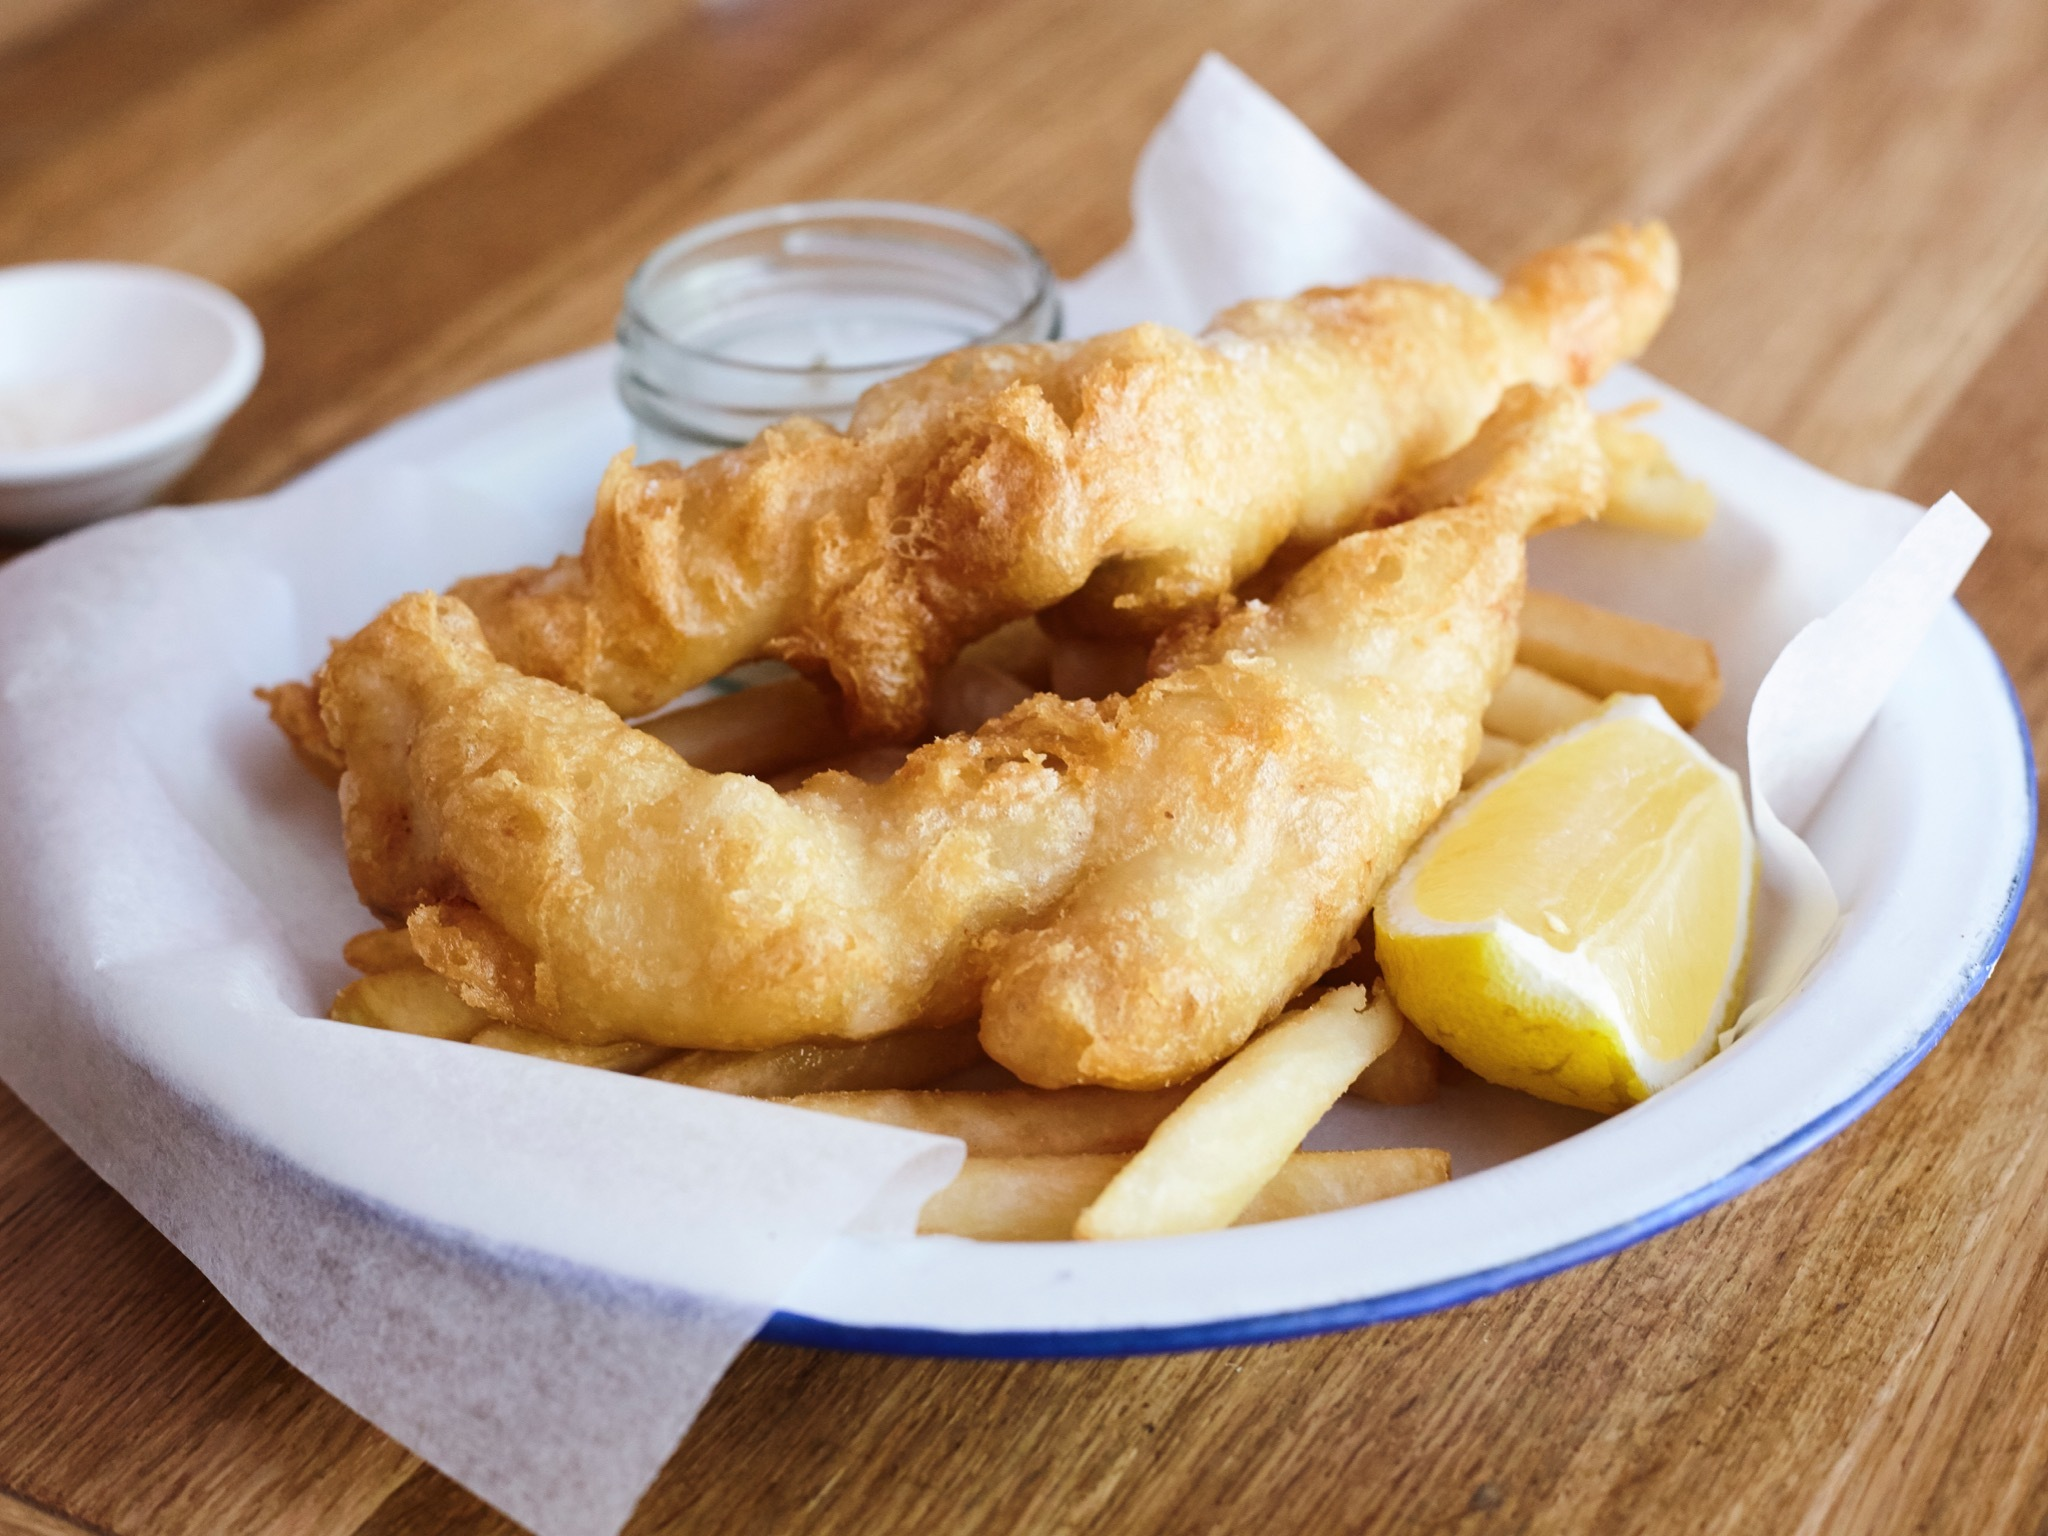 Fish and Chips at The Fish Shop